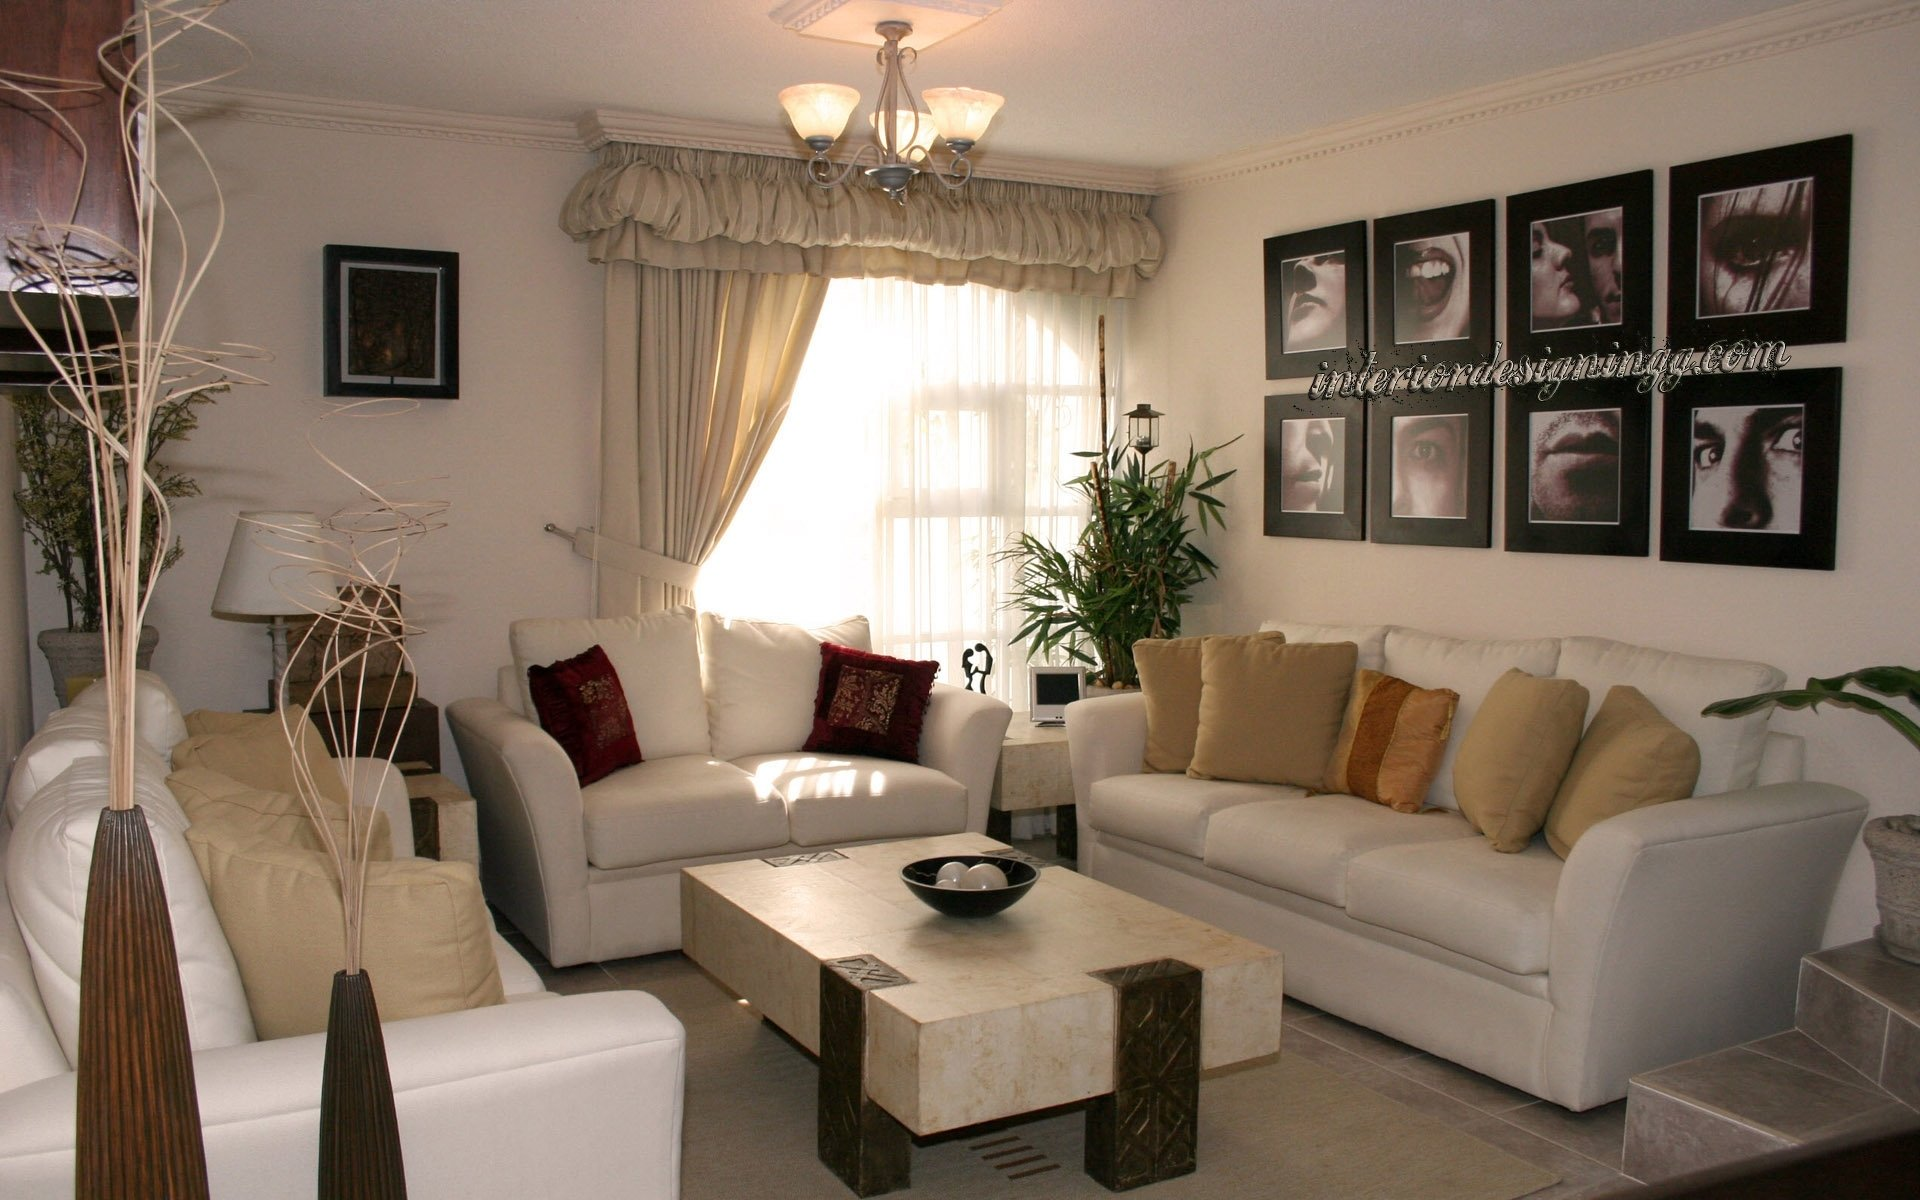 10 Amazing Interior Decorating Ideas For Living Rooms living room classy modern small living room ideas with modern also 2021